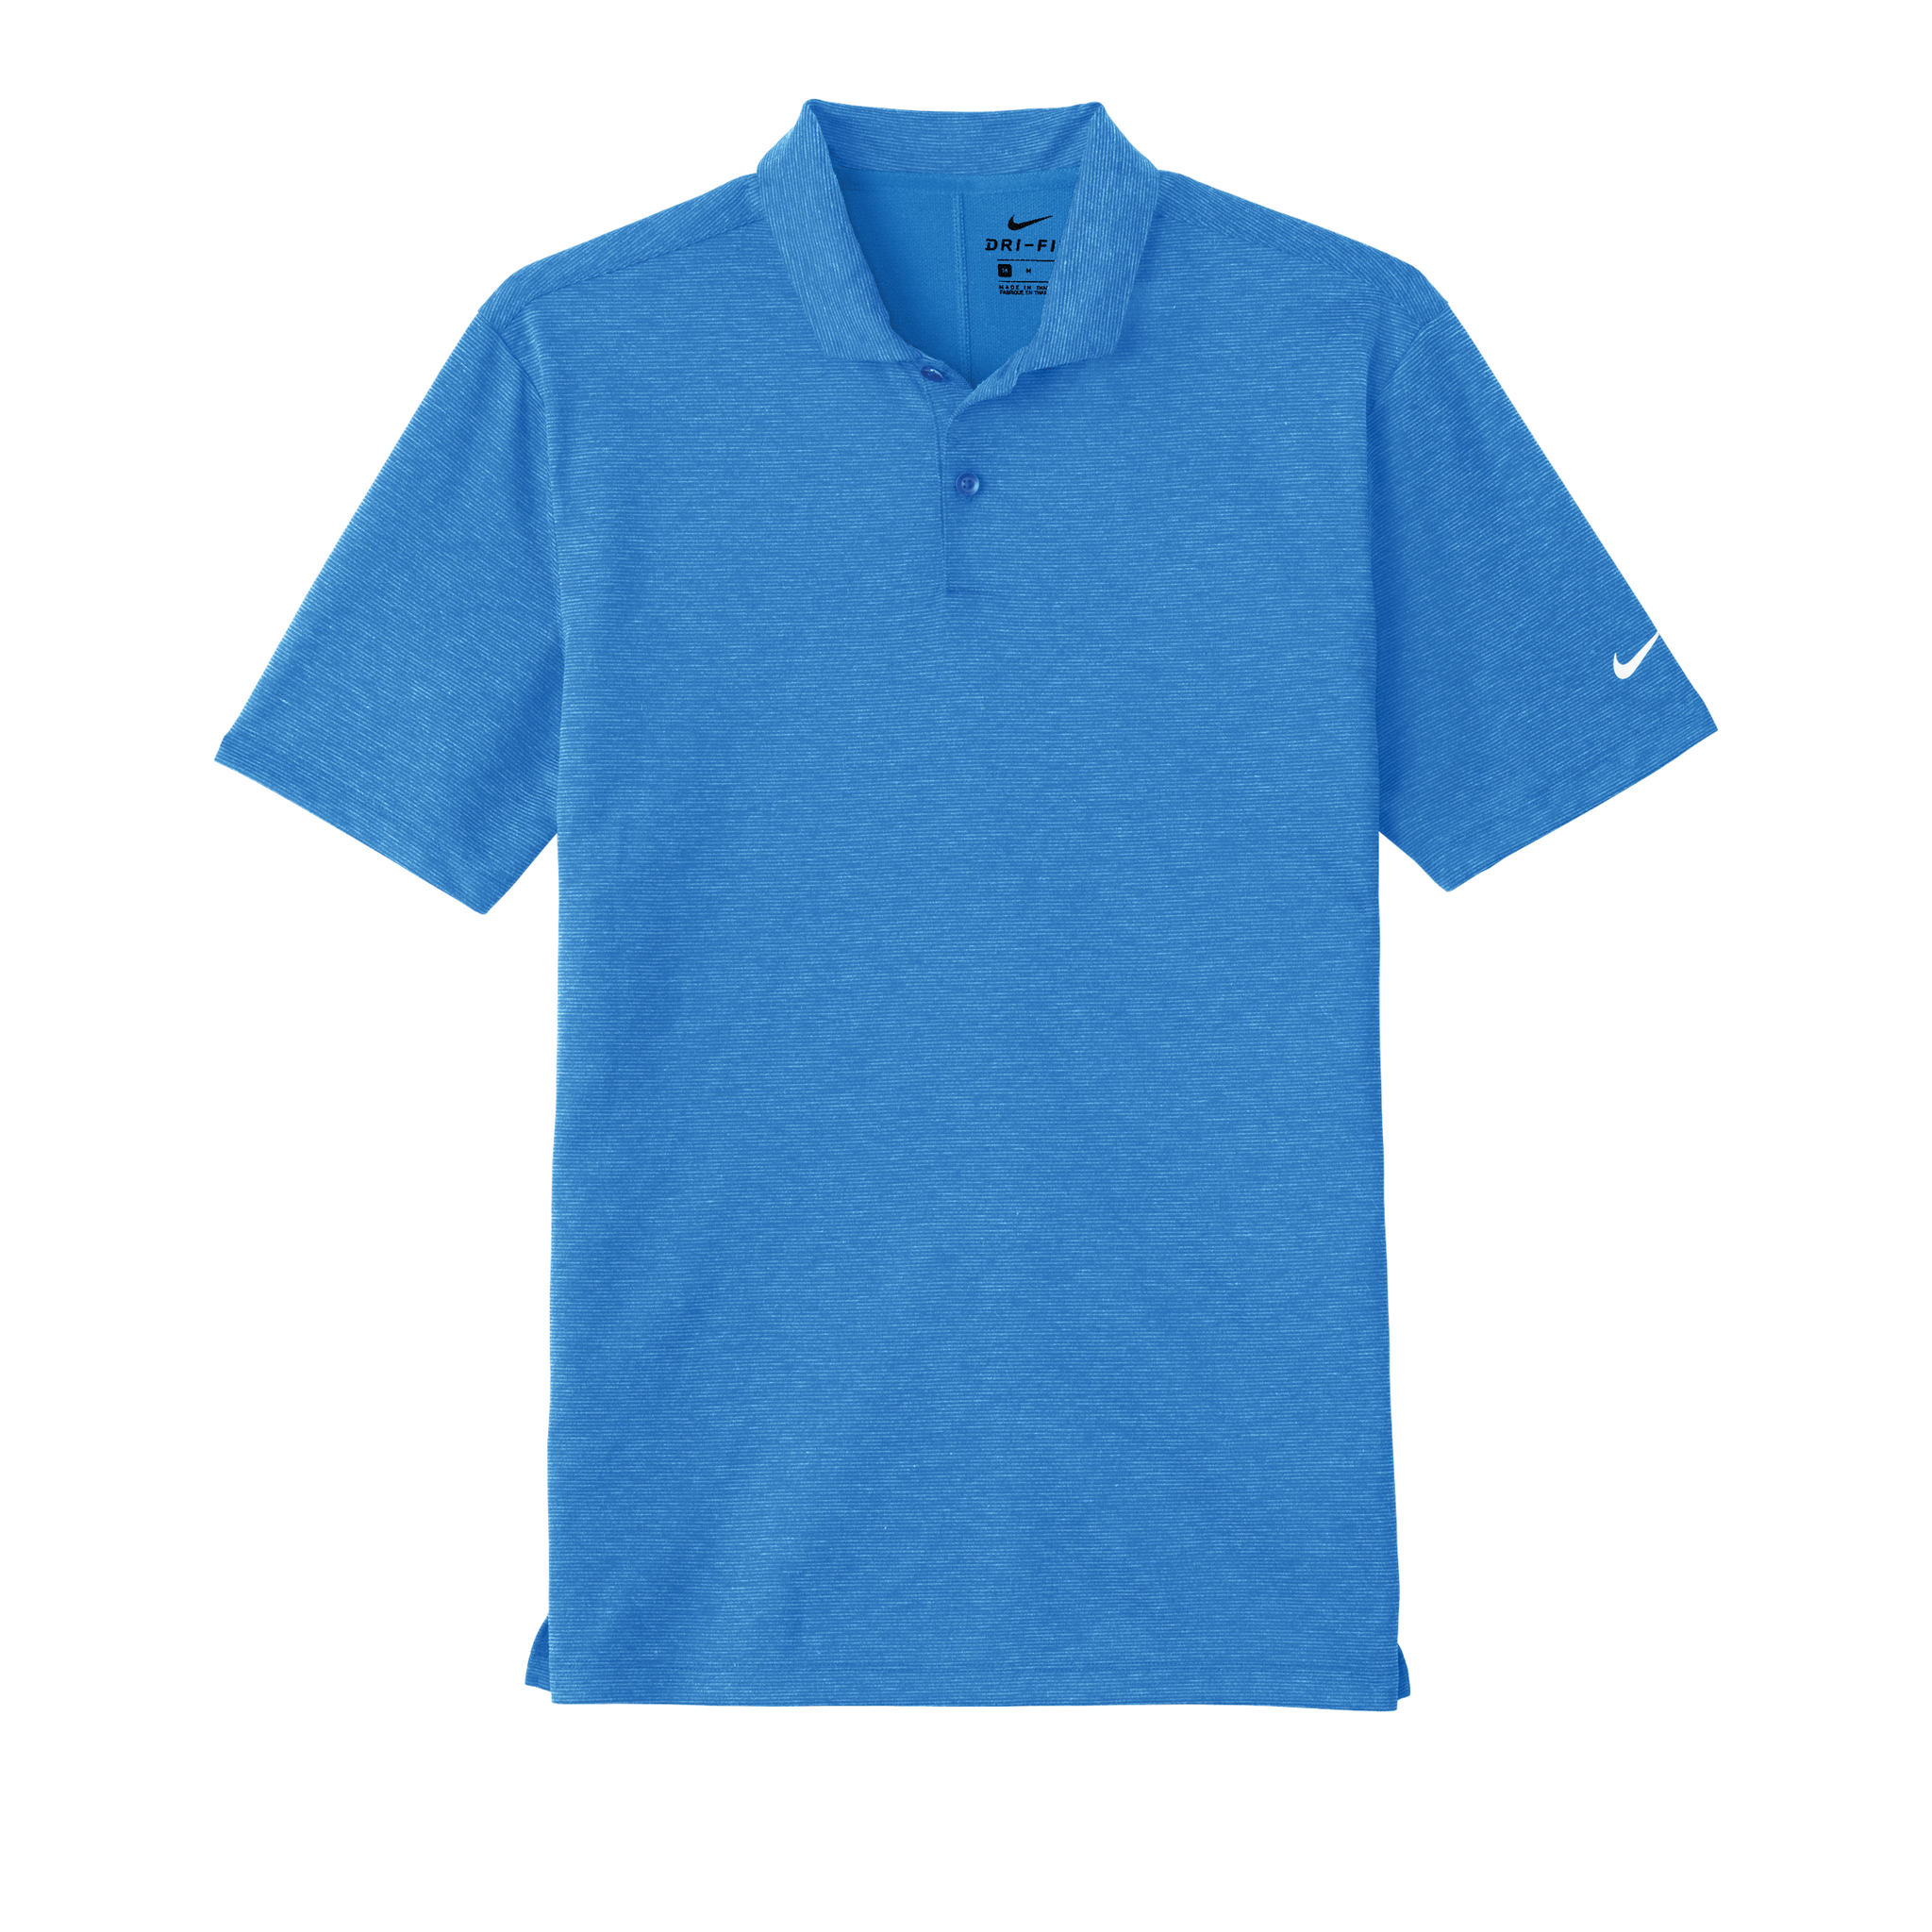 D1901 Mens Dri-Fit Prime Polo